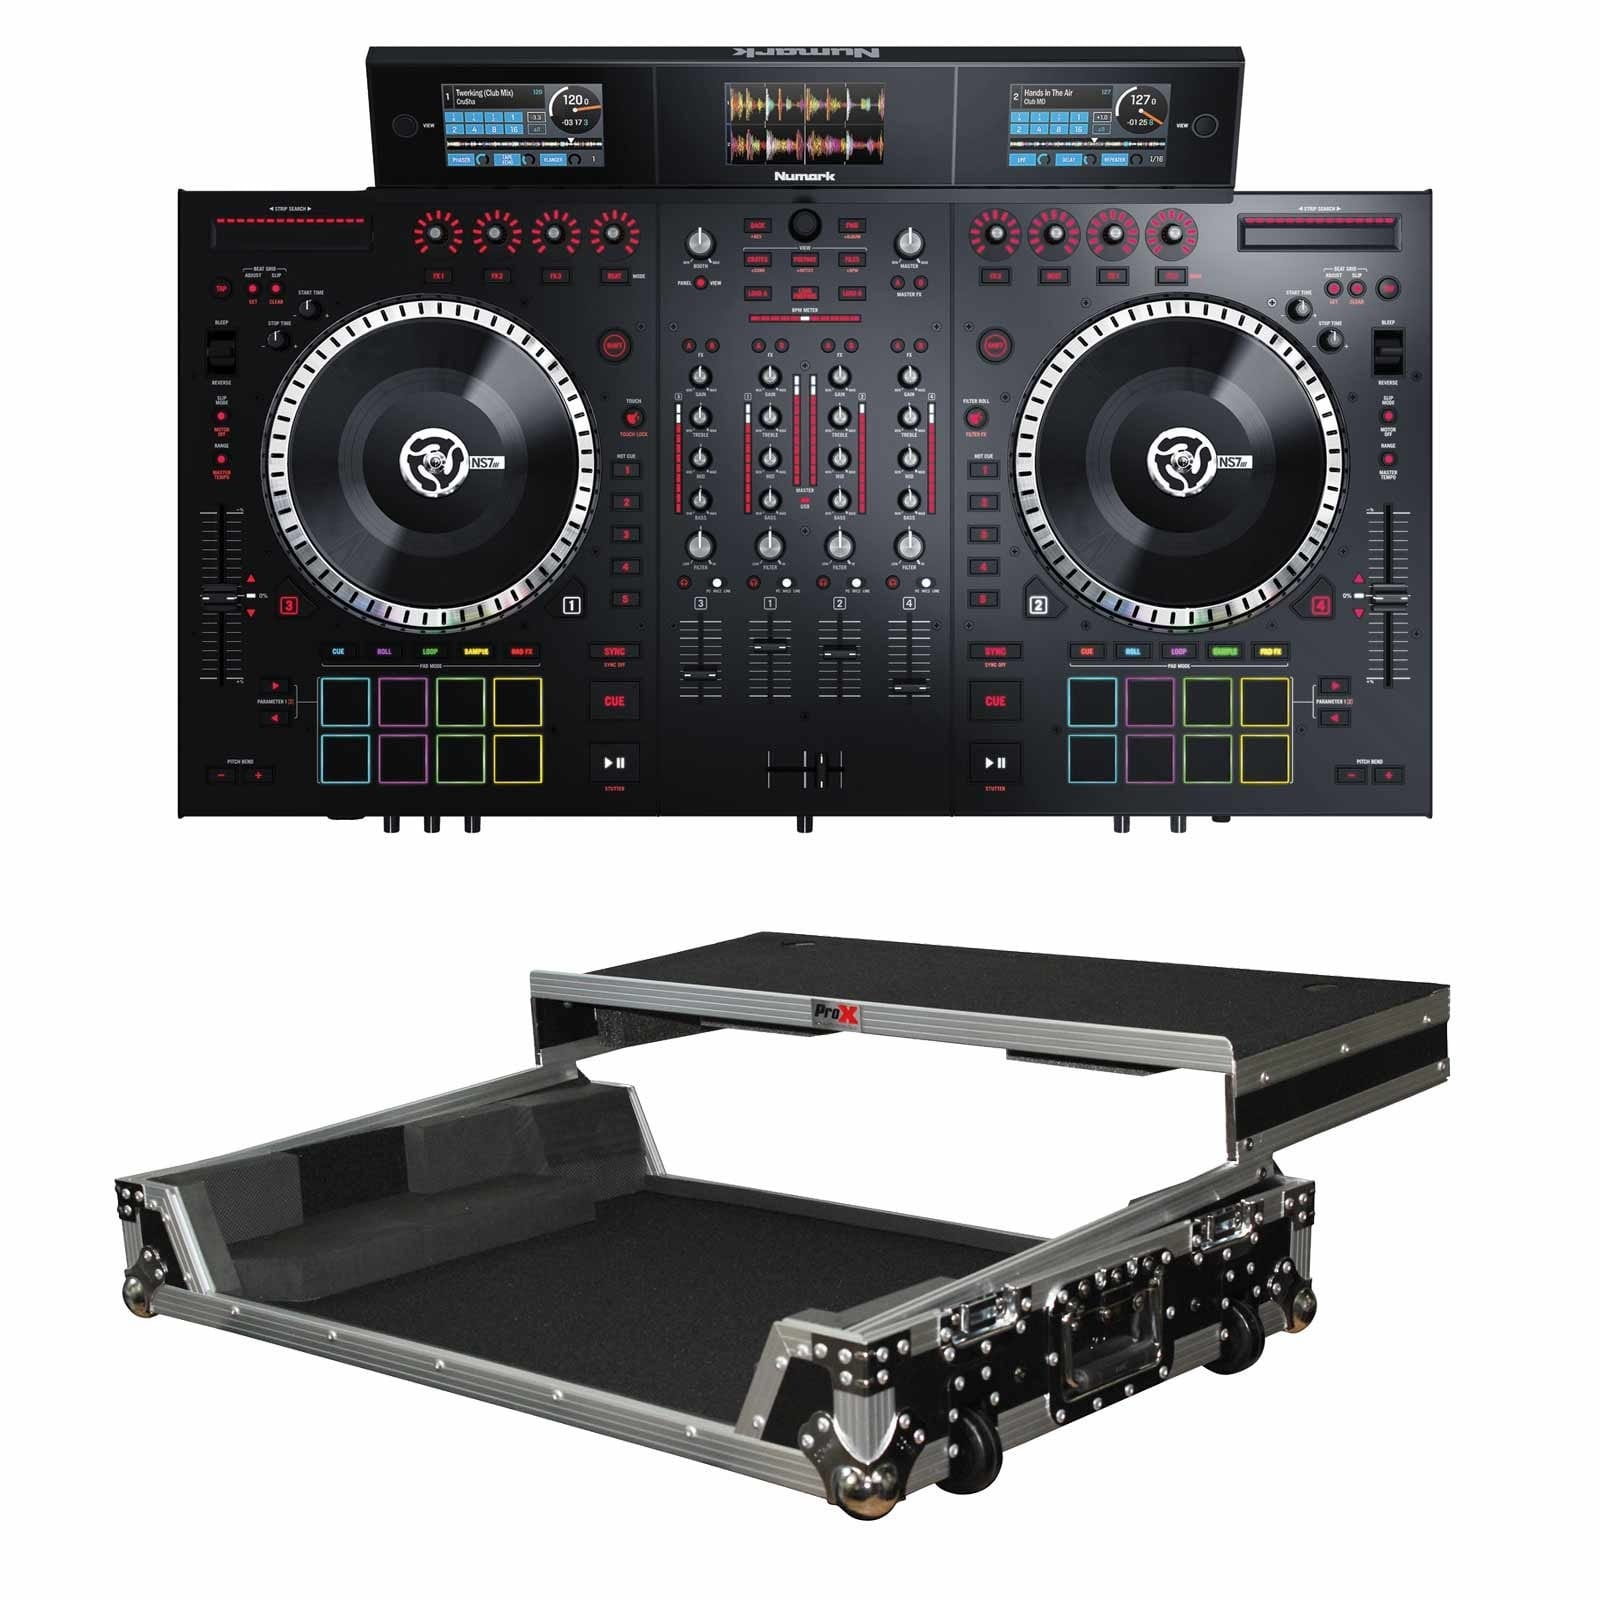 numark-ns7iii-4-channel-motorized-serato-dj-controller-and-mixer-with-screens-flight-case-package-